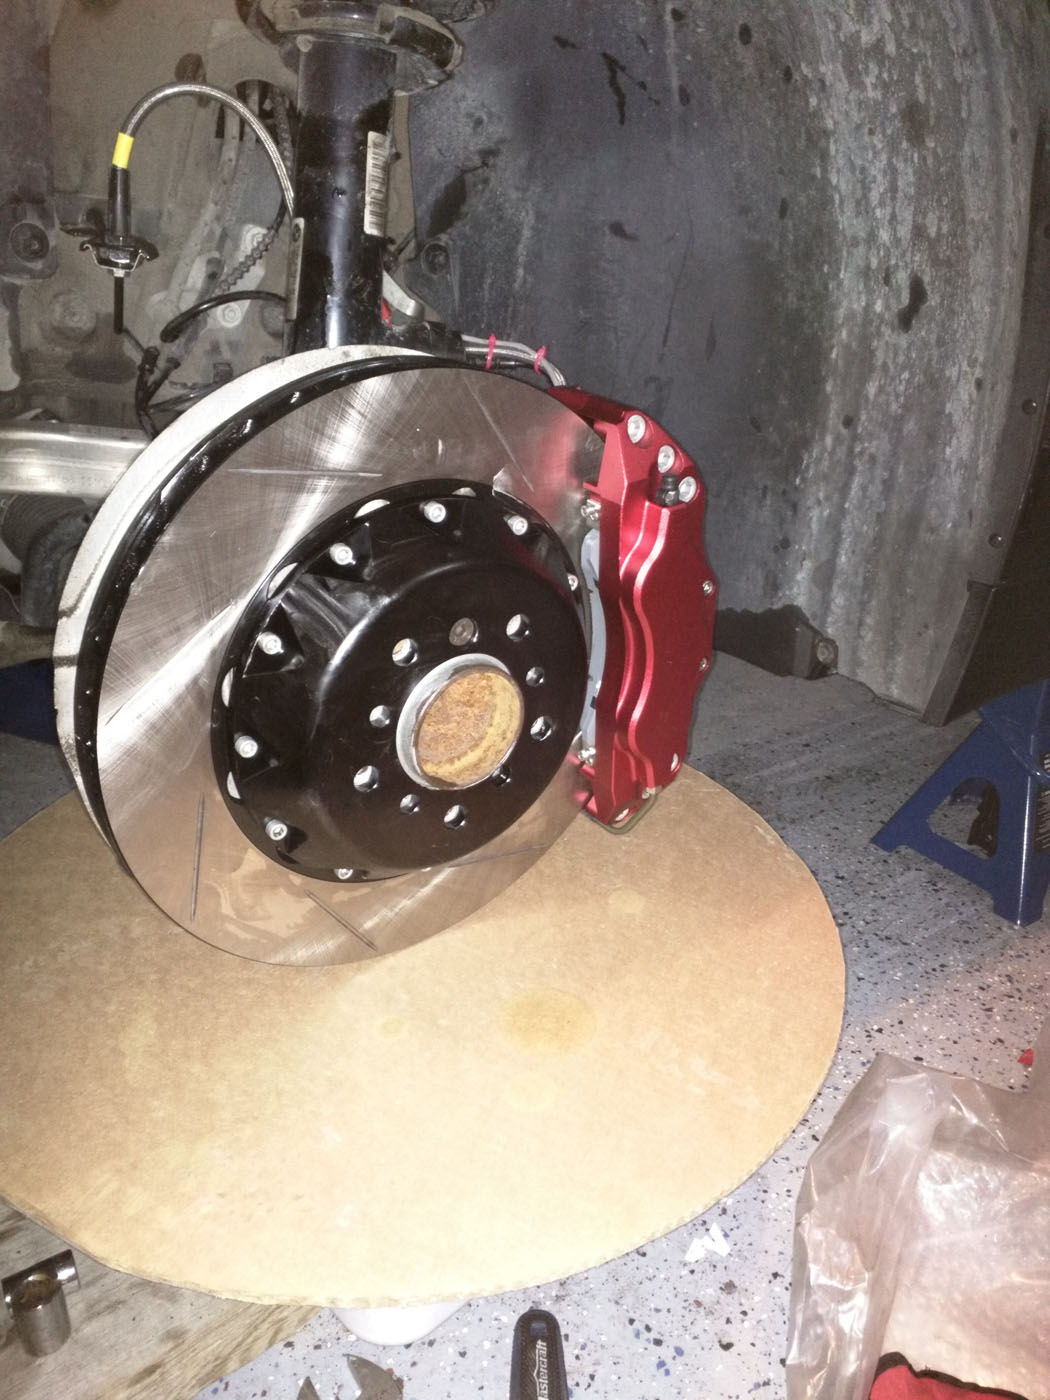 Project Mu Rear Big Brake Kit Mazda Rx7 Forum Wilwood Disc Kitfront Stock Replacementhonda262mm Rotors Them With Zero Issues Now Keep In Mind This Is For A Street Driven Car He Has Never Taken The On Track But Does Drive Pretty Hard